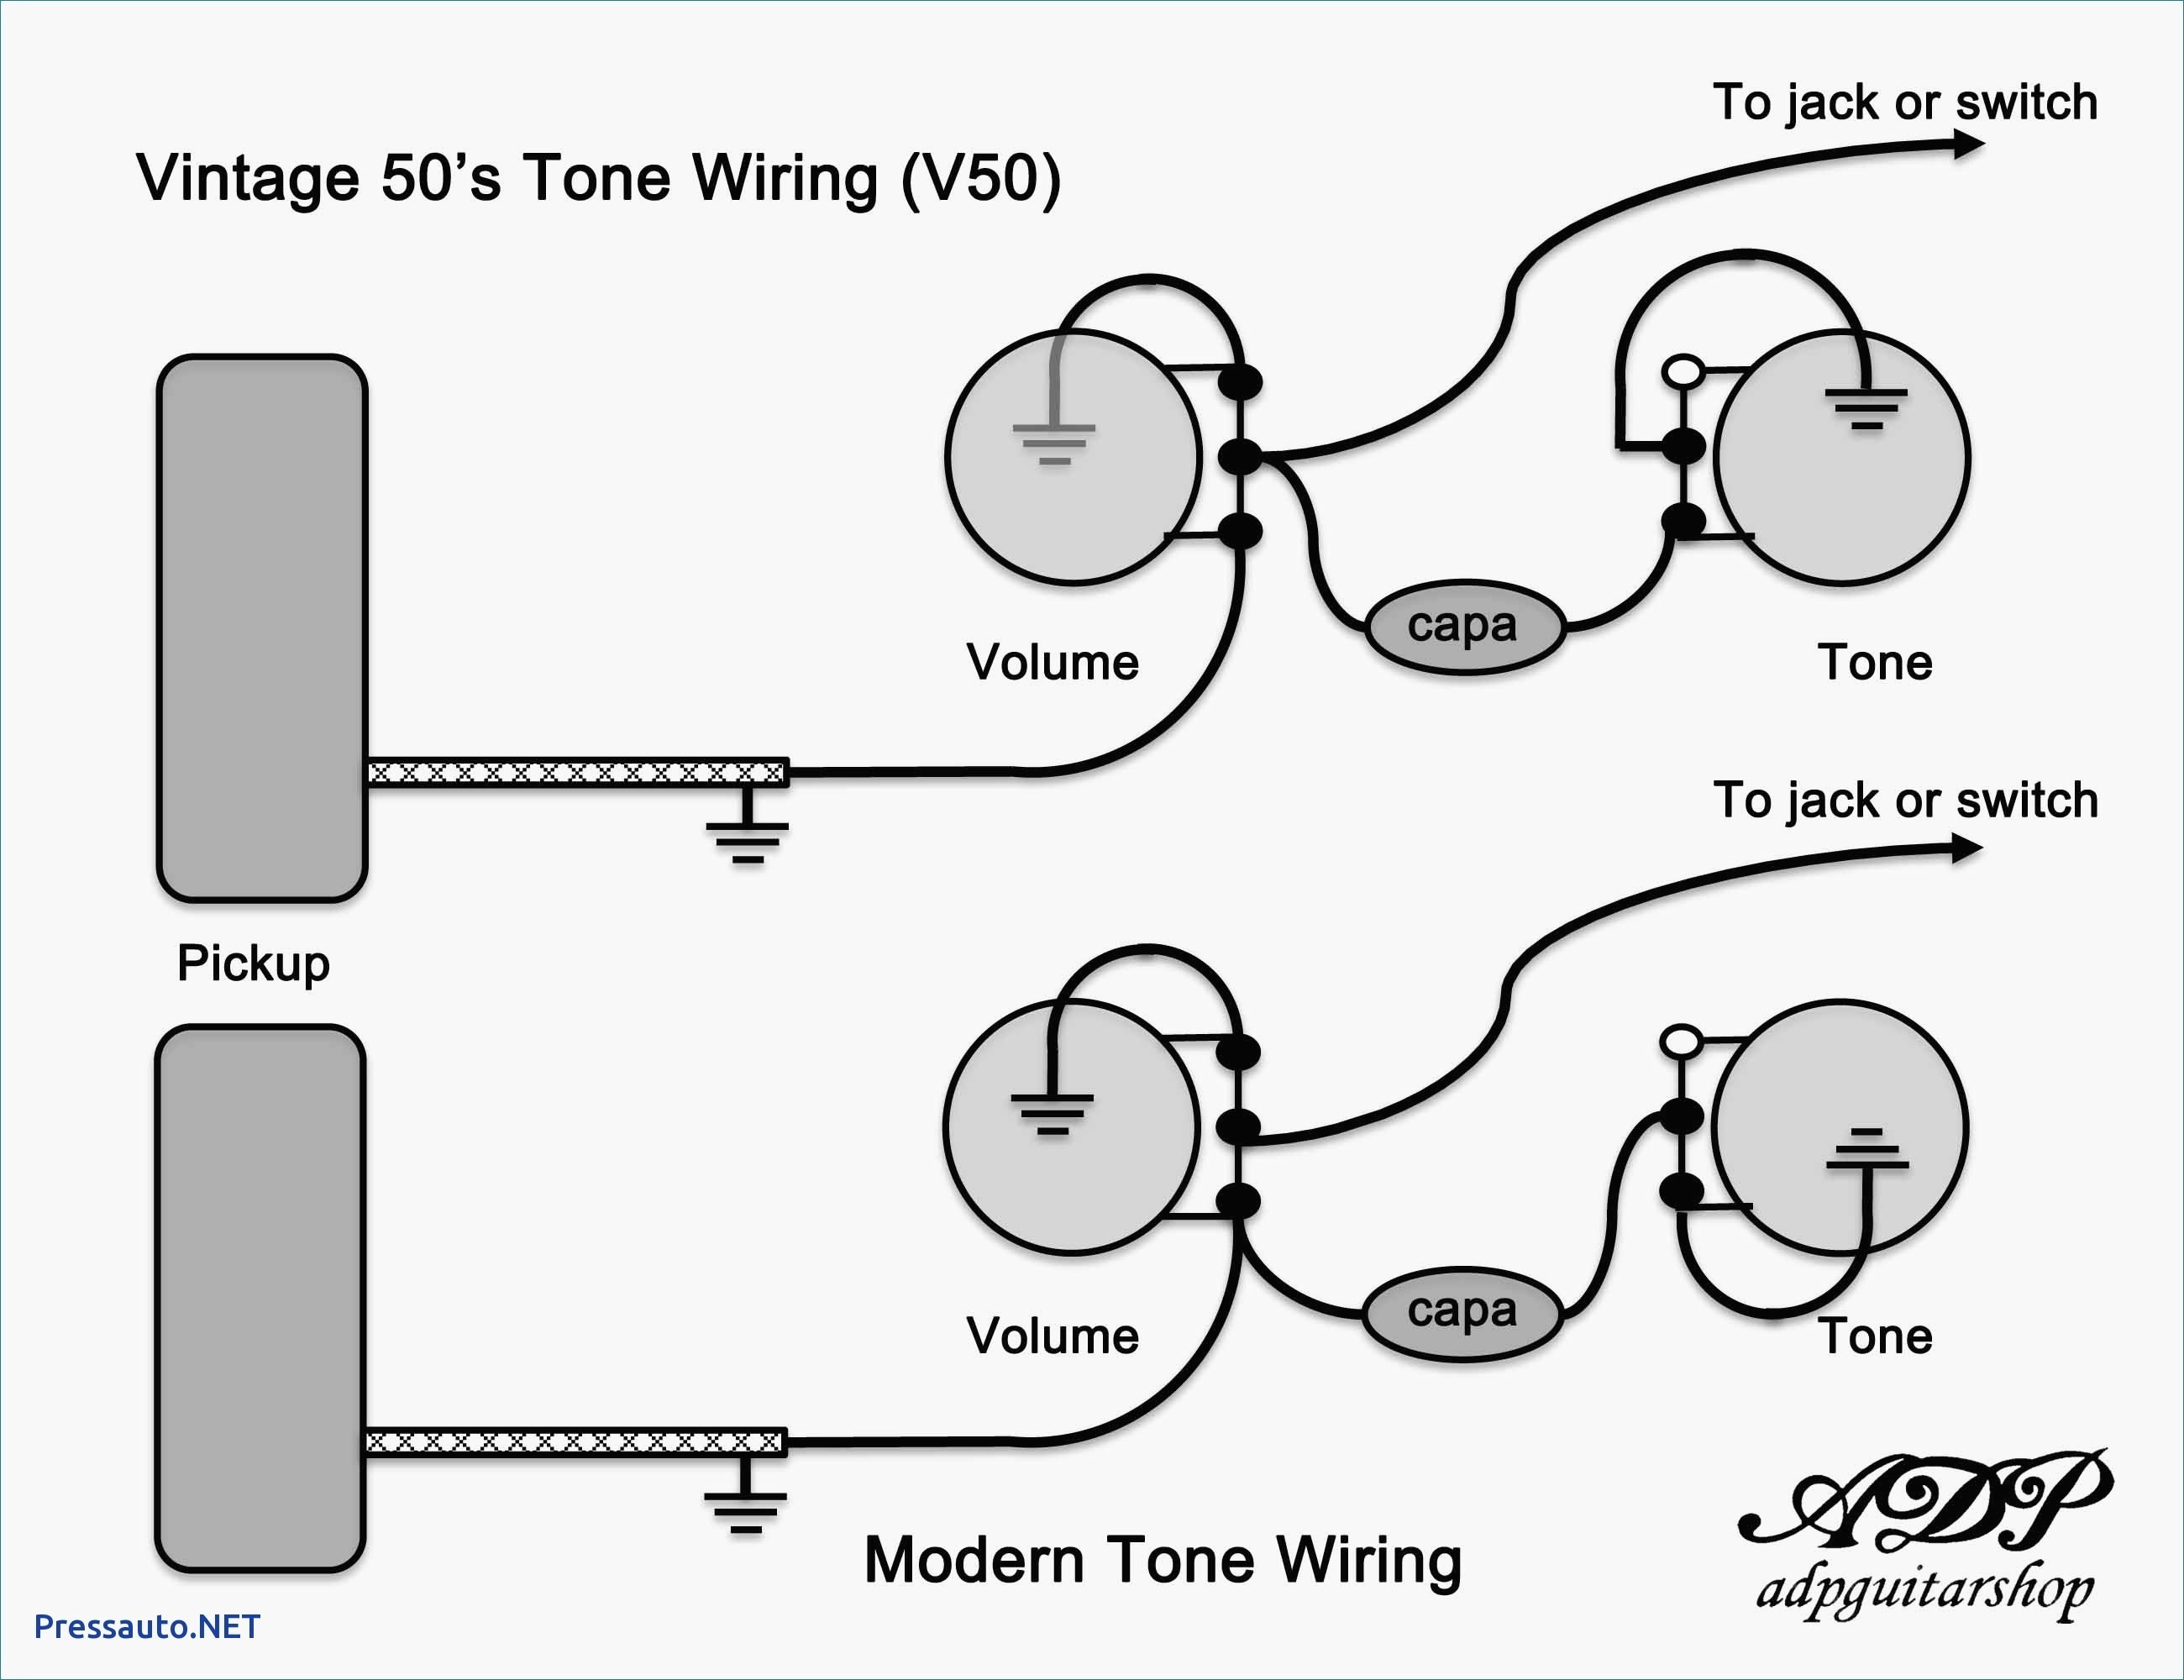 epiphone les paul special wiring diagram Download-Wiring Diagram For Epiphone Les Paul Guitar Valid Stock Epiphone Les Paul Wiring Diagram Fresh Epiphone Les Paul 12-k